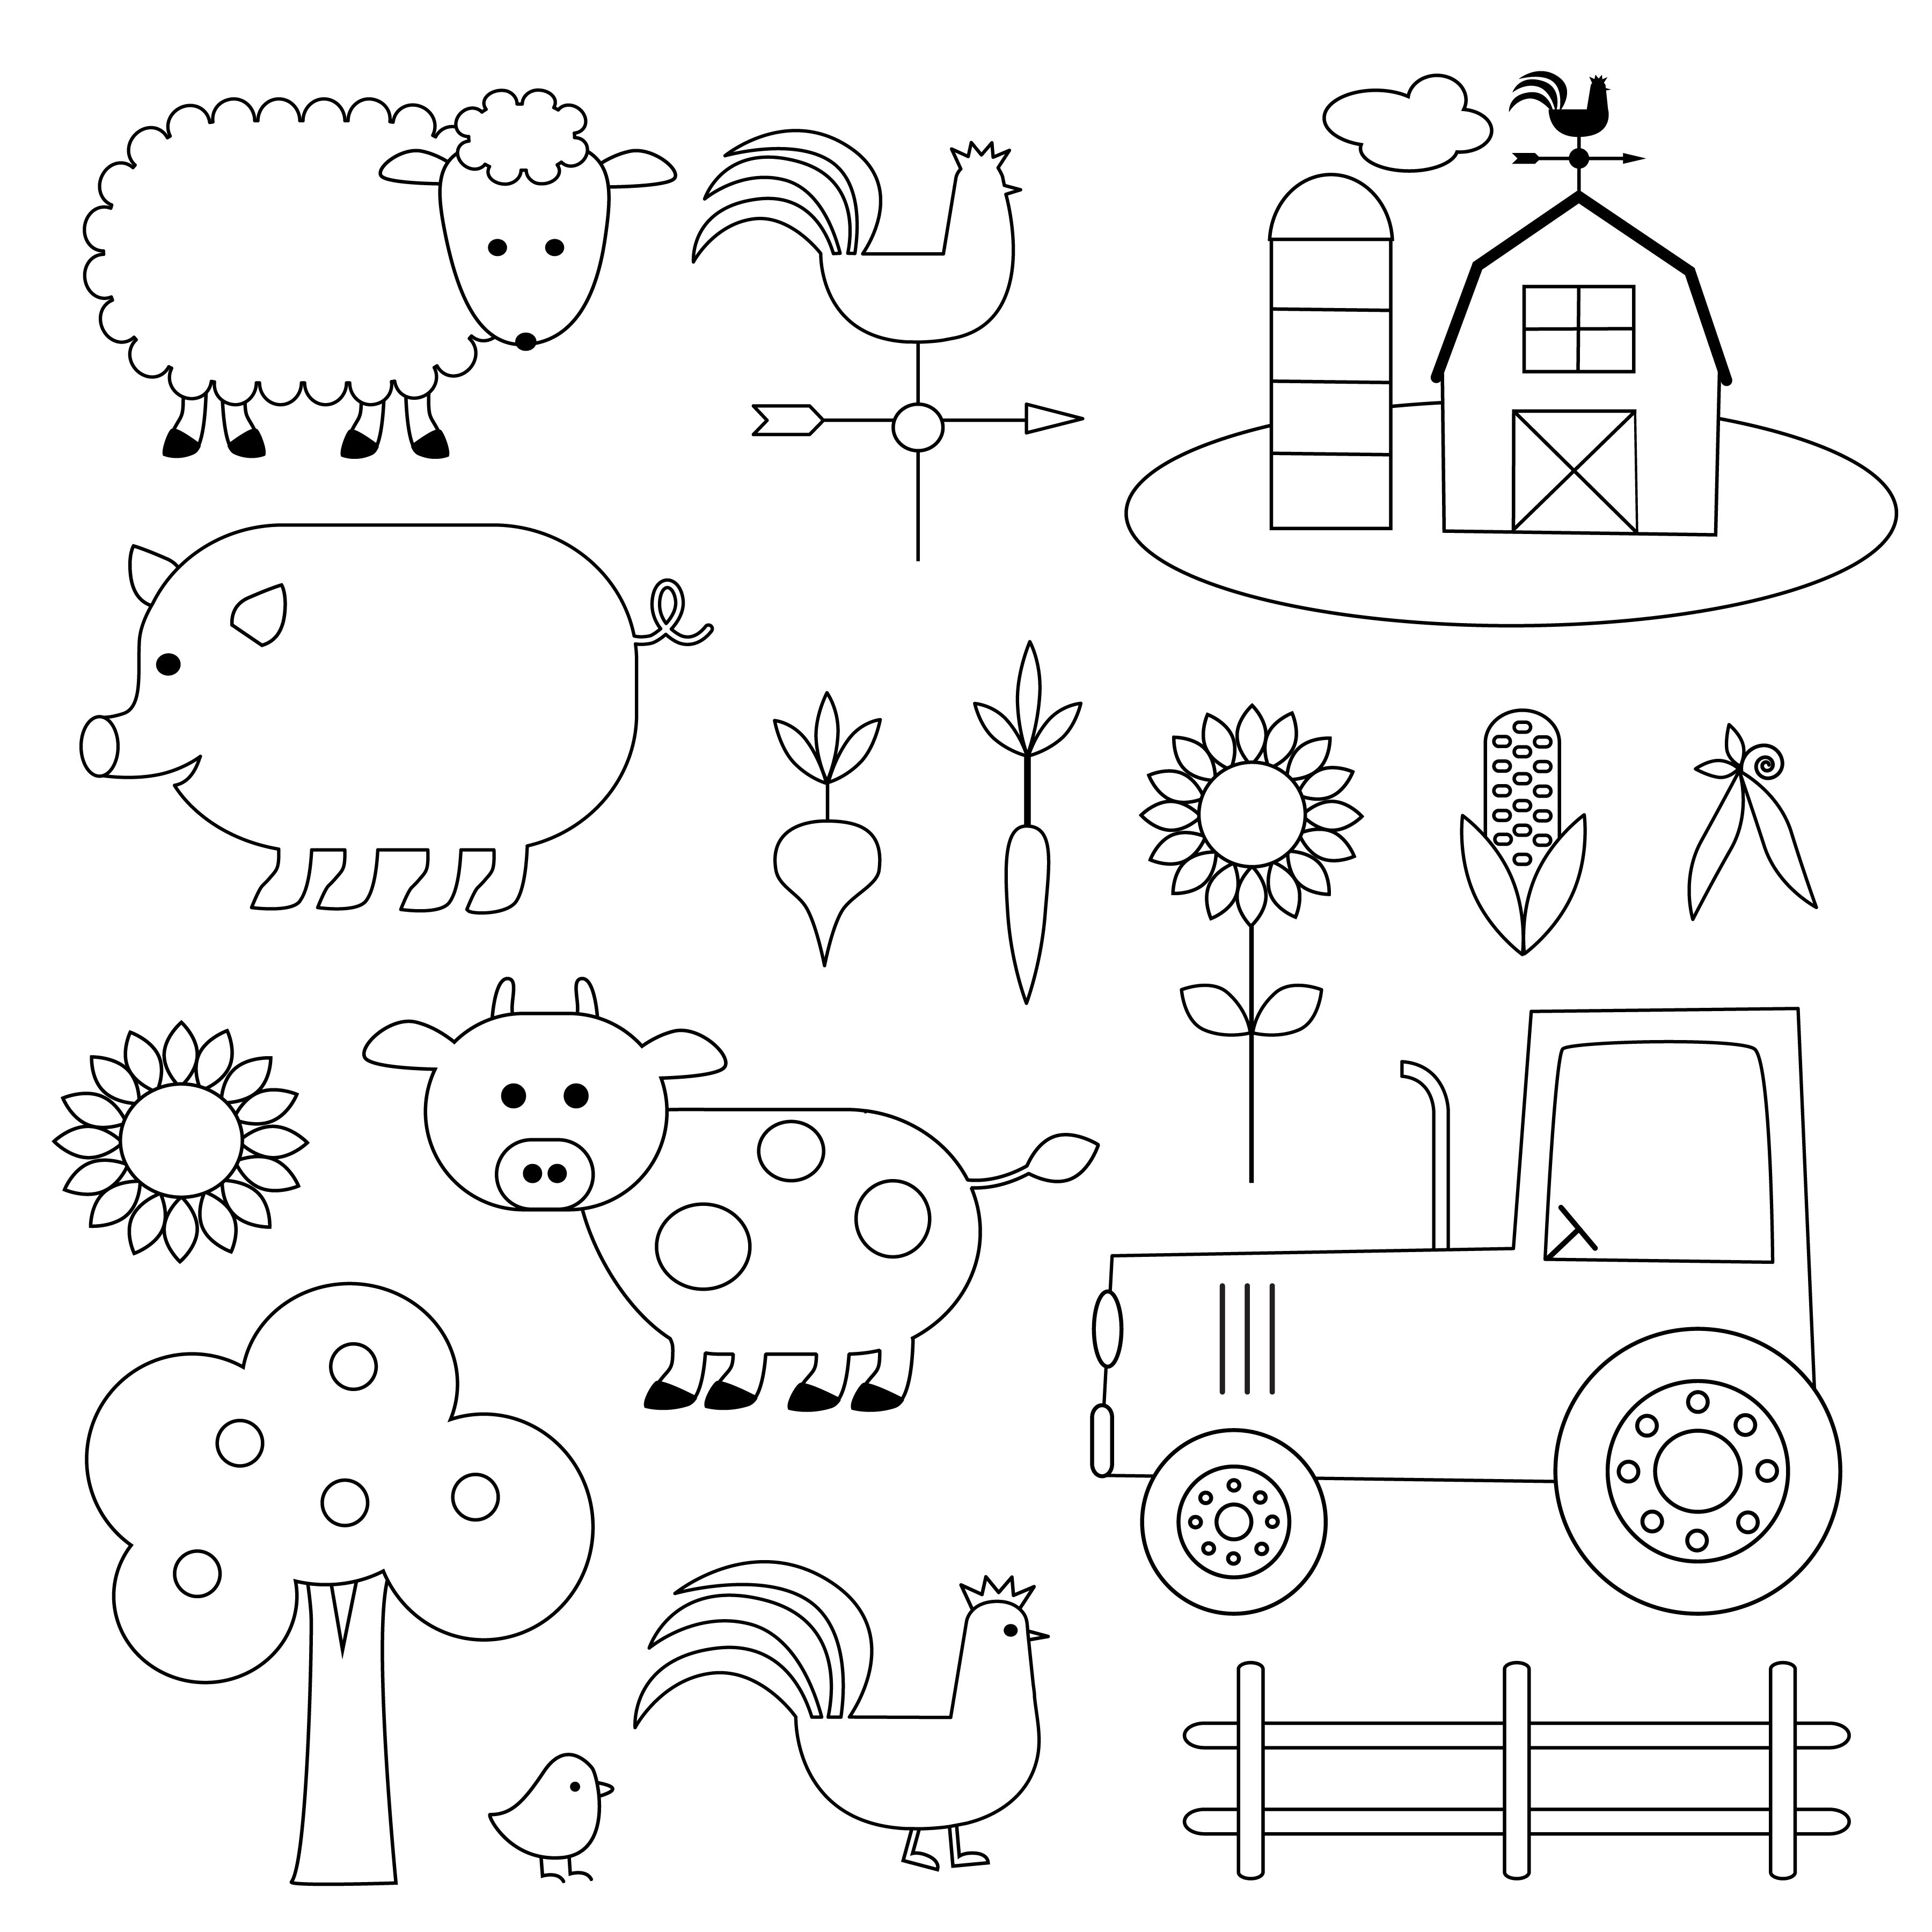 Download Farm Animals Digital Stamps Clipart Vector Art Choose From Over A Million Free Vectors Clipart Graphics Vector Digital Stamps Clip Art Farm Animals